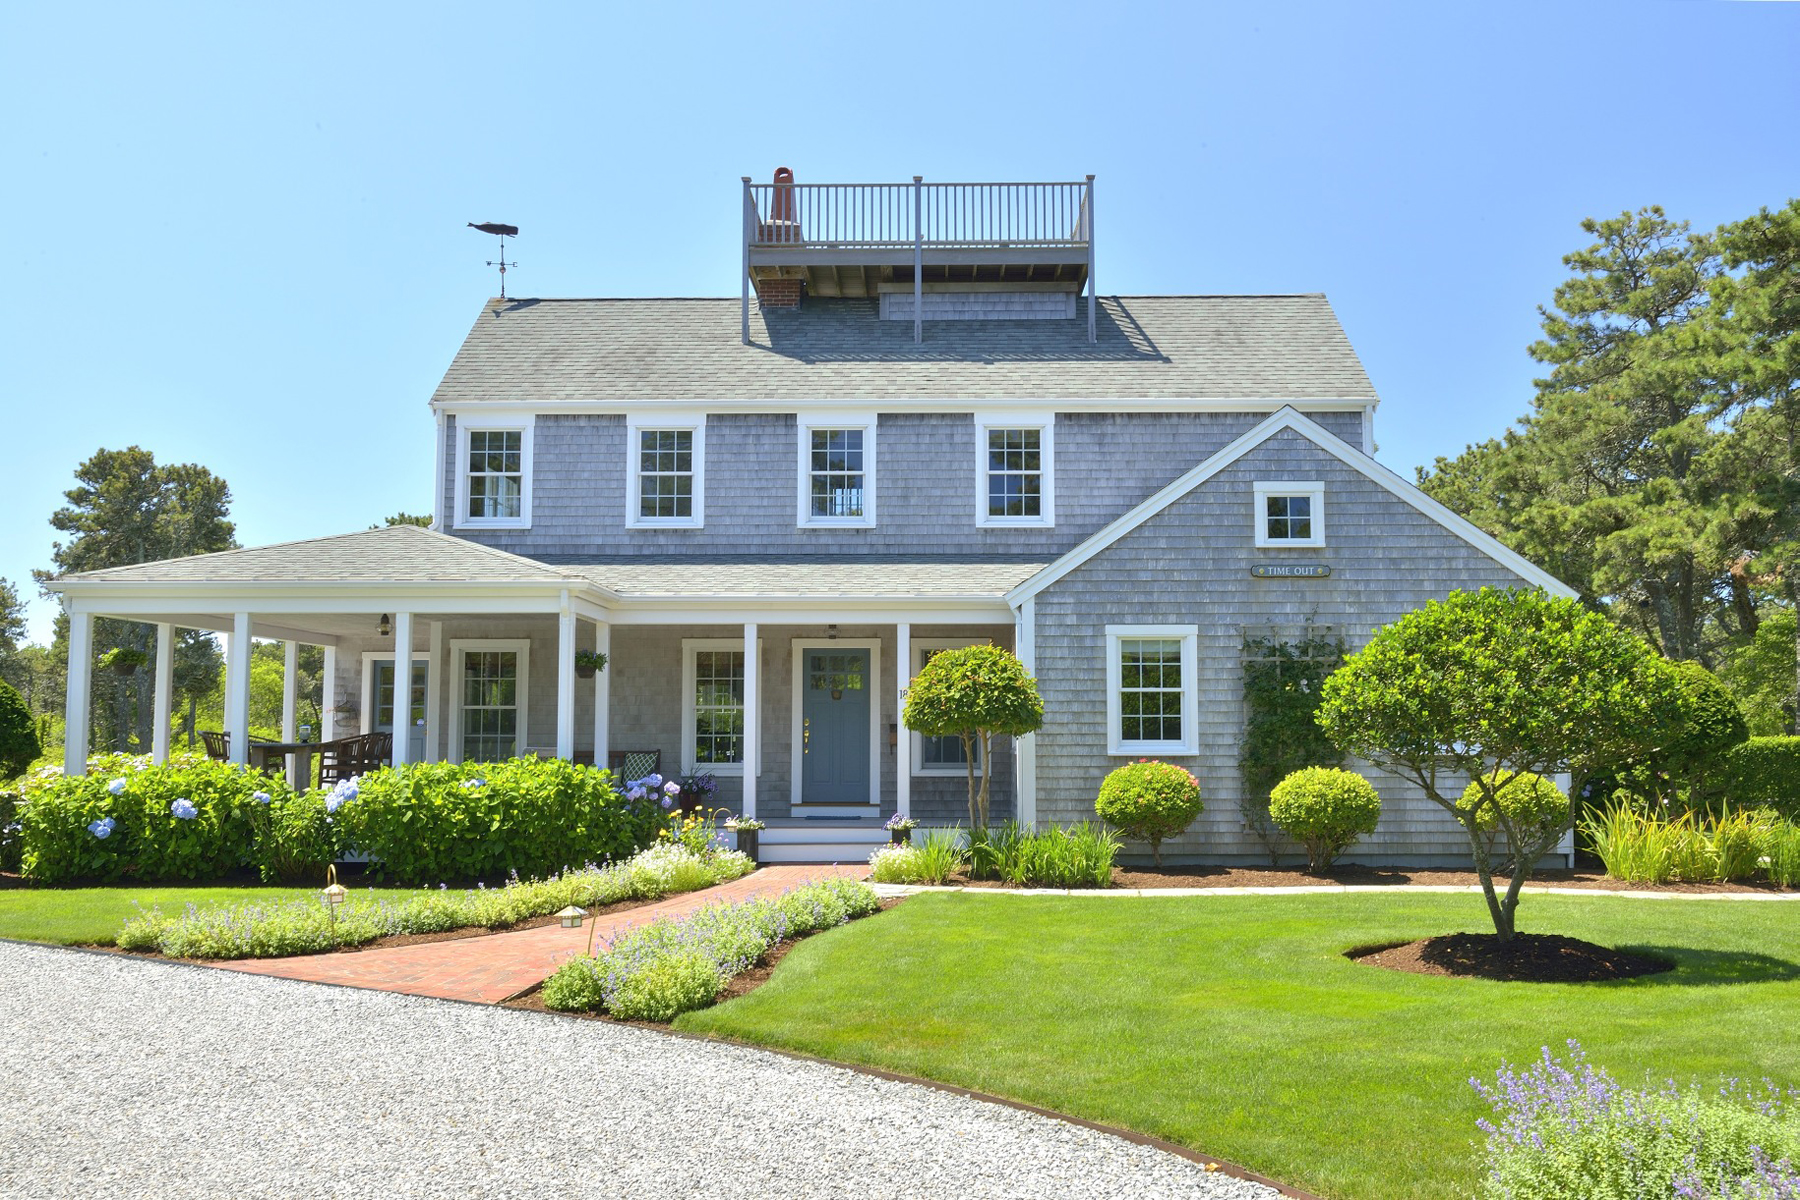 Single Family Home for Sale at Cisco Serenity 18 Deer Run Road Nantucket, Massachusetts 02554 United States